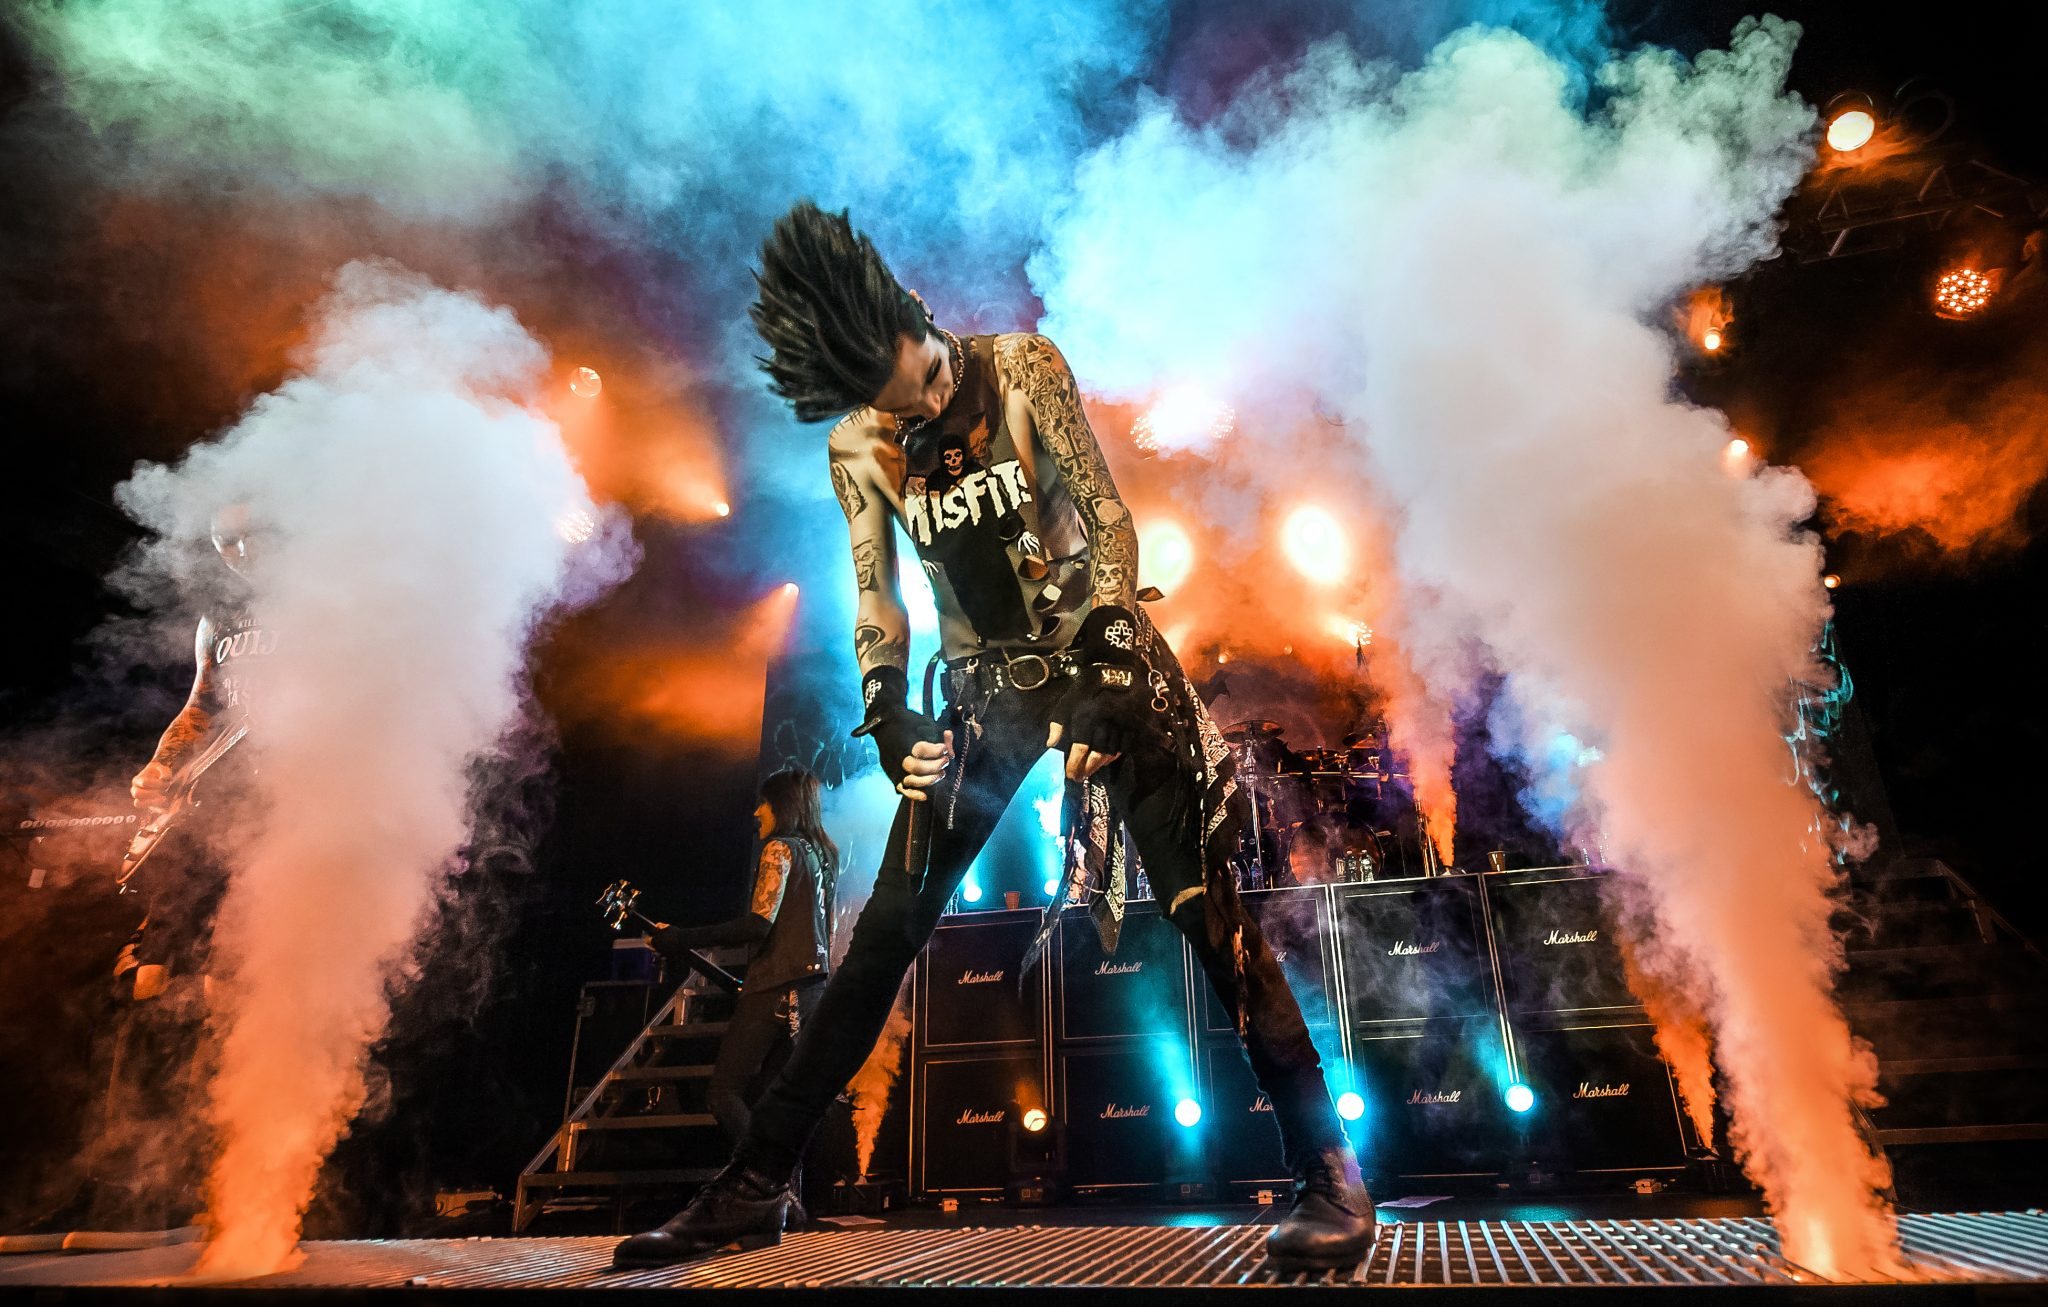 Black Veil Brides vocalist Andy Biersack standing between columns of CO2 on the 2015 Black Mass tour at The Fillmore in Charlotte, NC. Photo by Lizzy Davis.